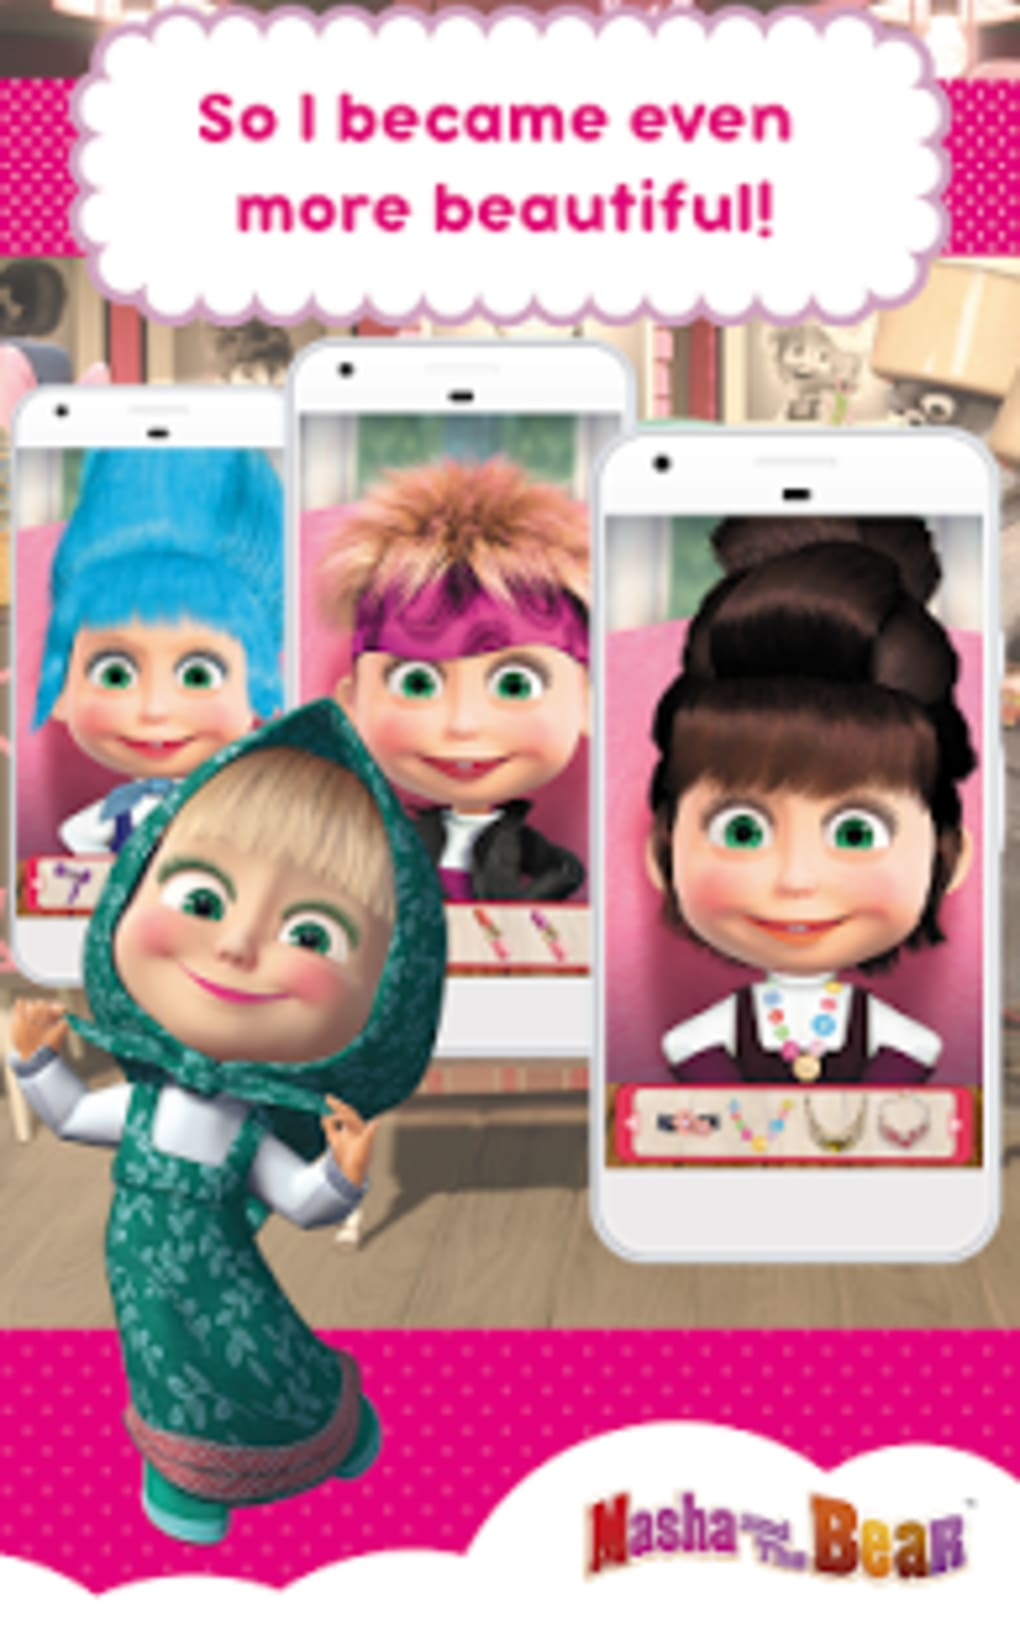 Masha and the Bear: Hair Salon and MakeUp Games for Android